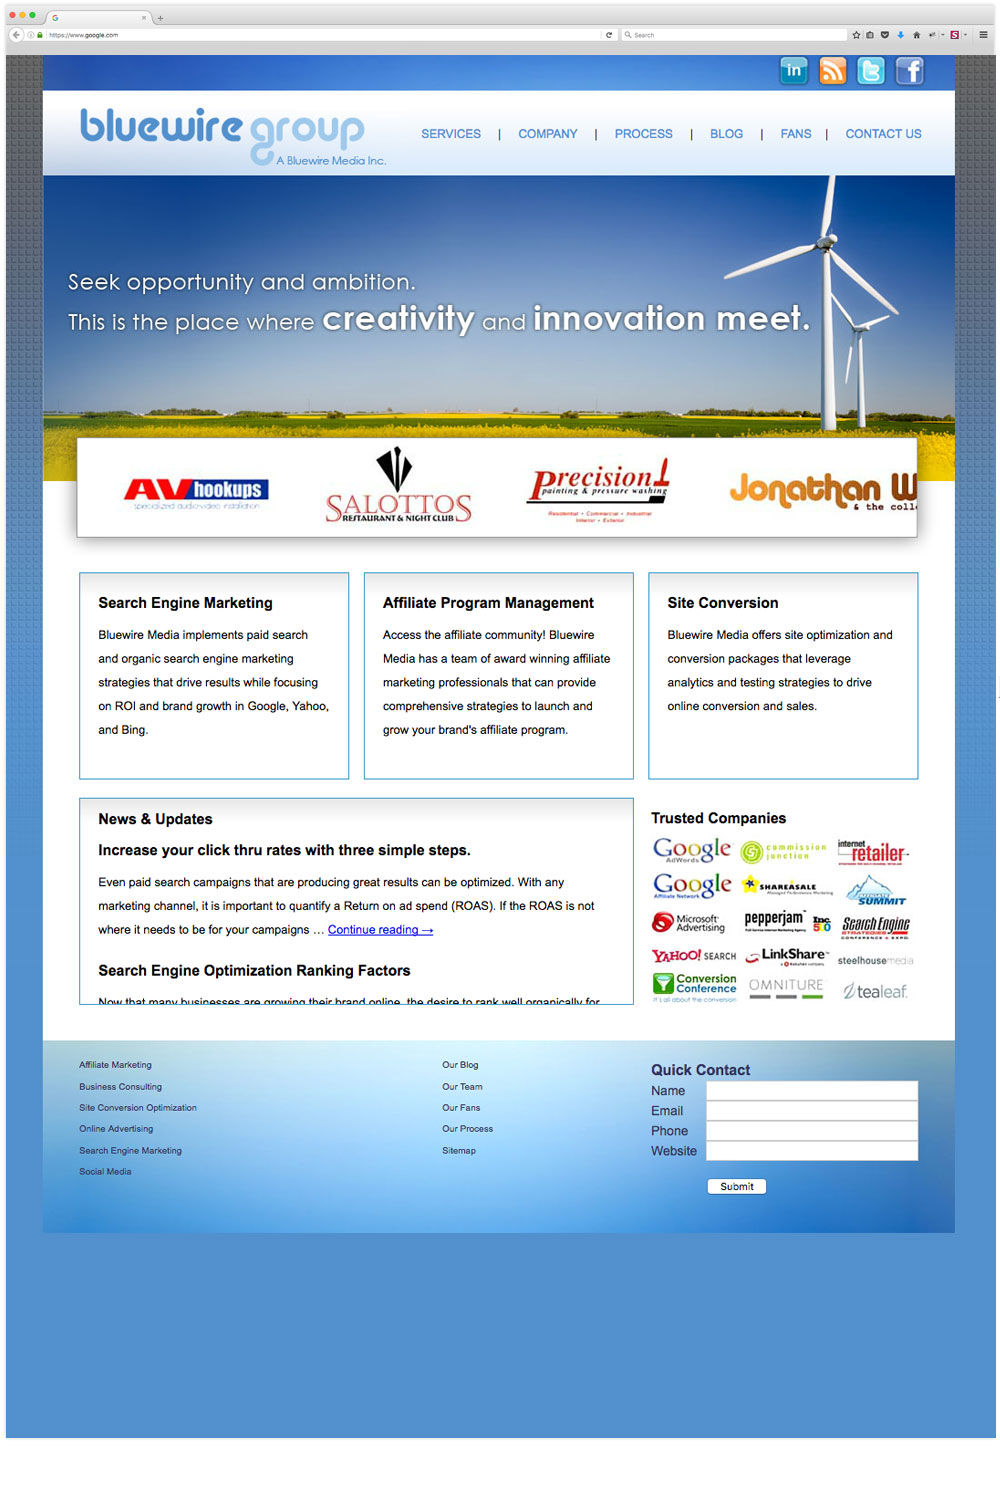 Bluewire Group website design